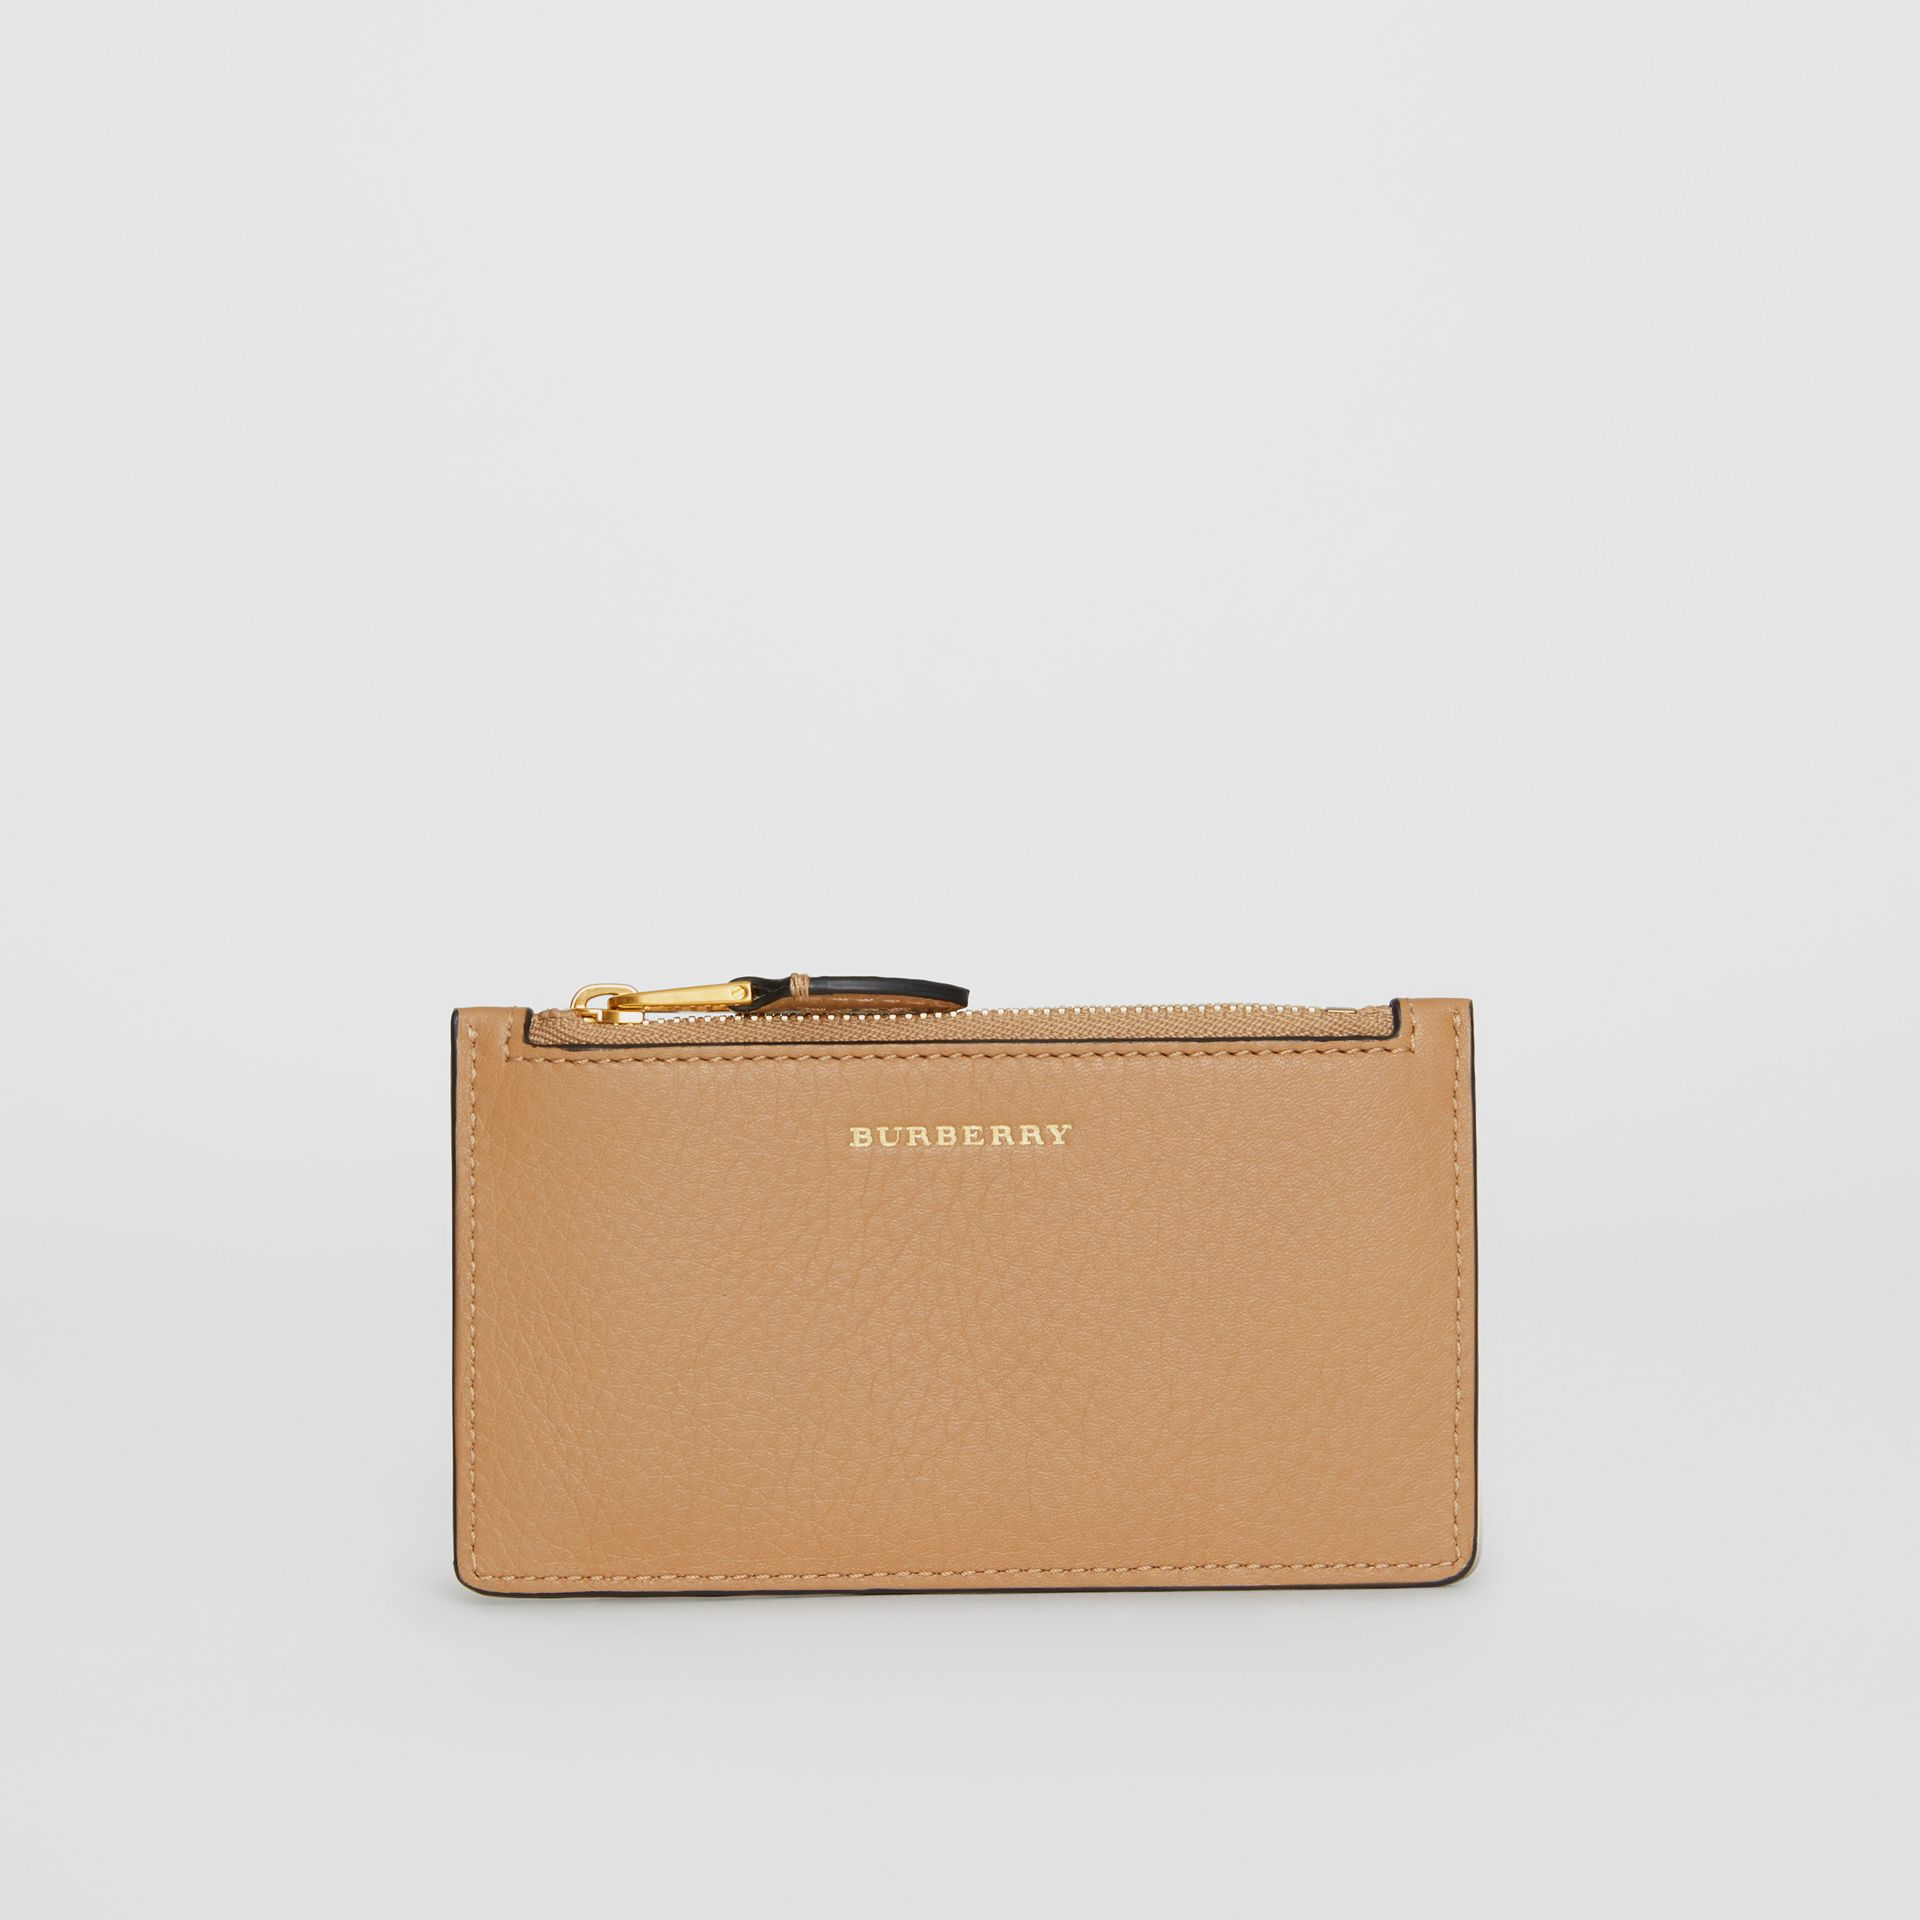 Two-tone Leather Card Case in Light Camel - Women | Burberry Singapore - gallery image 2